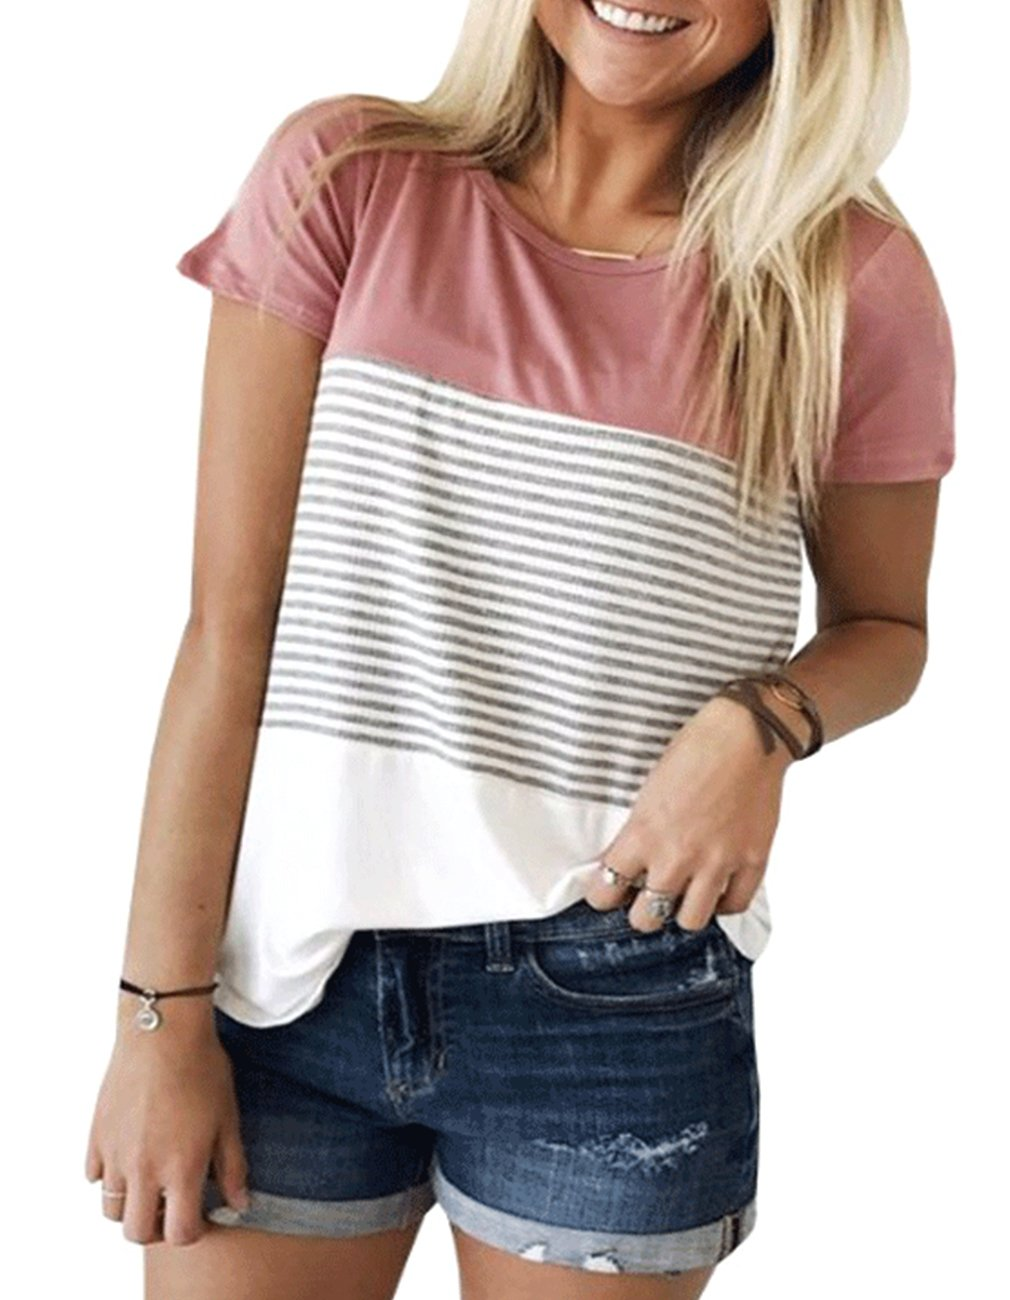 Miskely Women's Summer Short Sleeve Striped Blouse Junior Casual Tunic Tops T-Shirt (Small, Peach Pink)